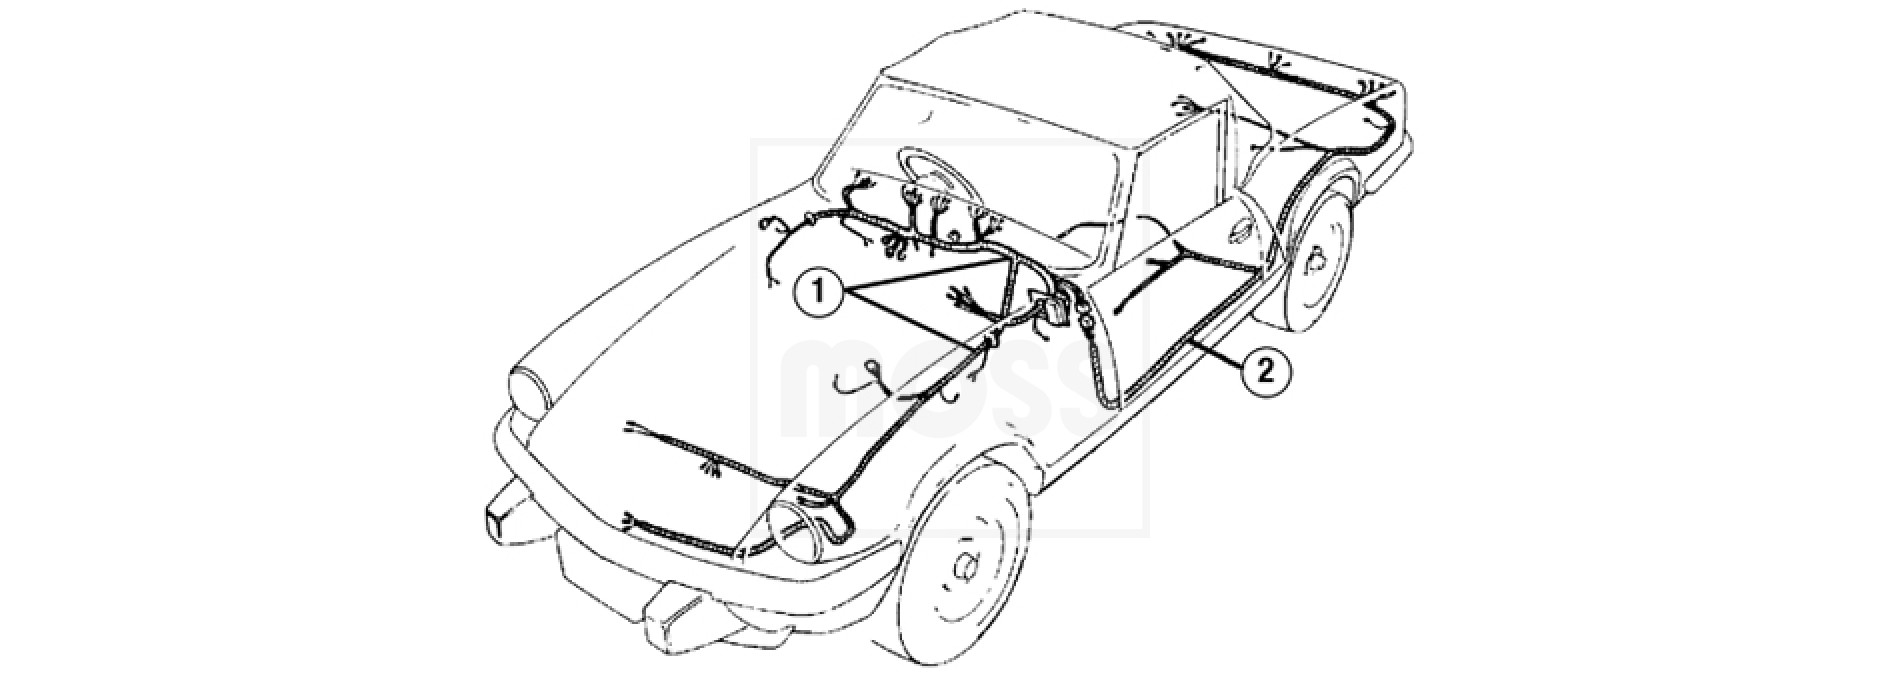 Main Body Wiring Harness Triumph Spitfire Electrical Diagrams Diagram 72 Gt6 Harnesses